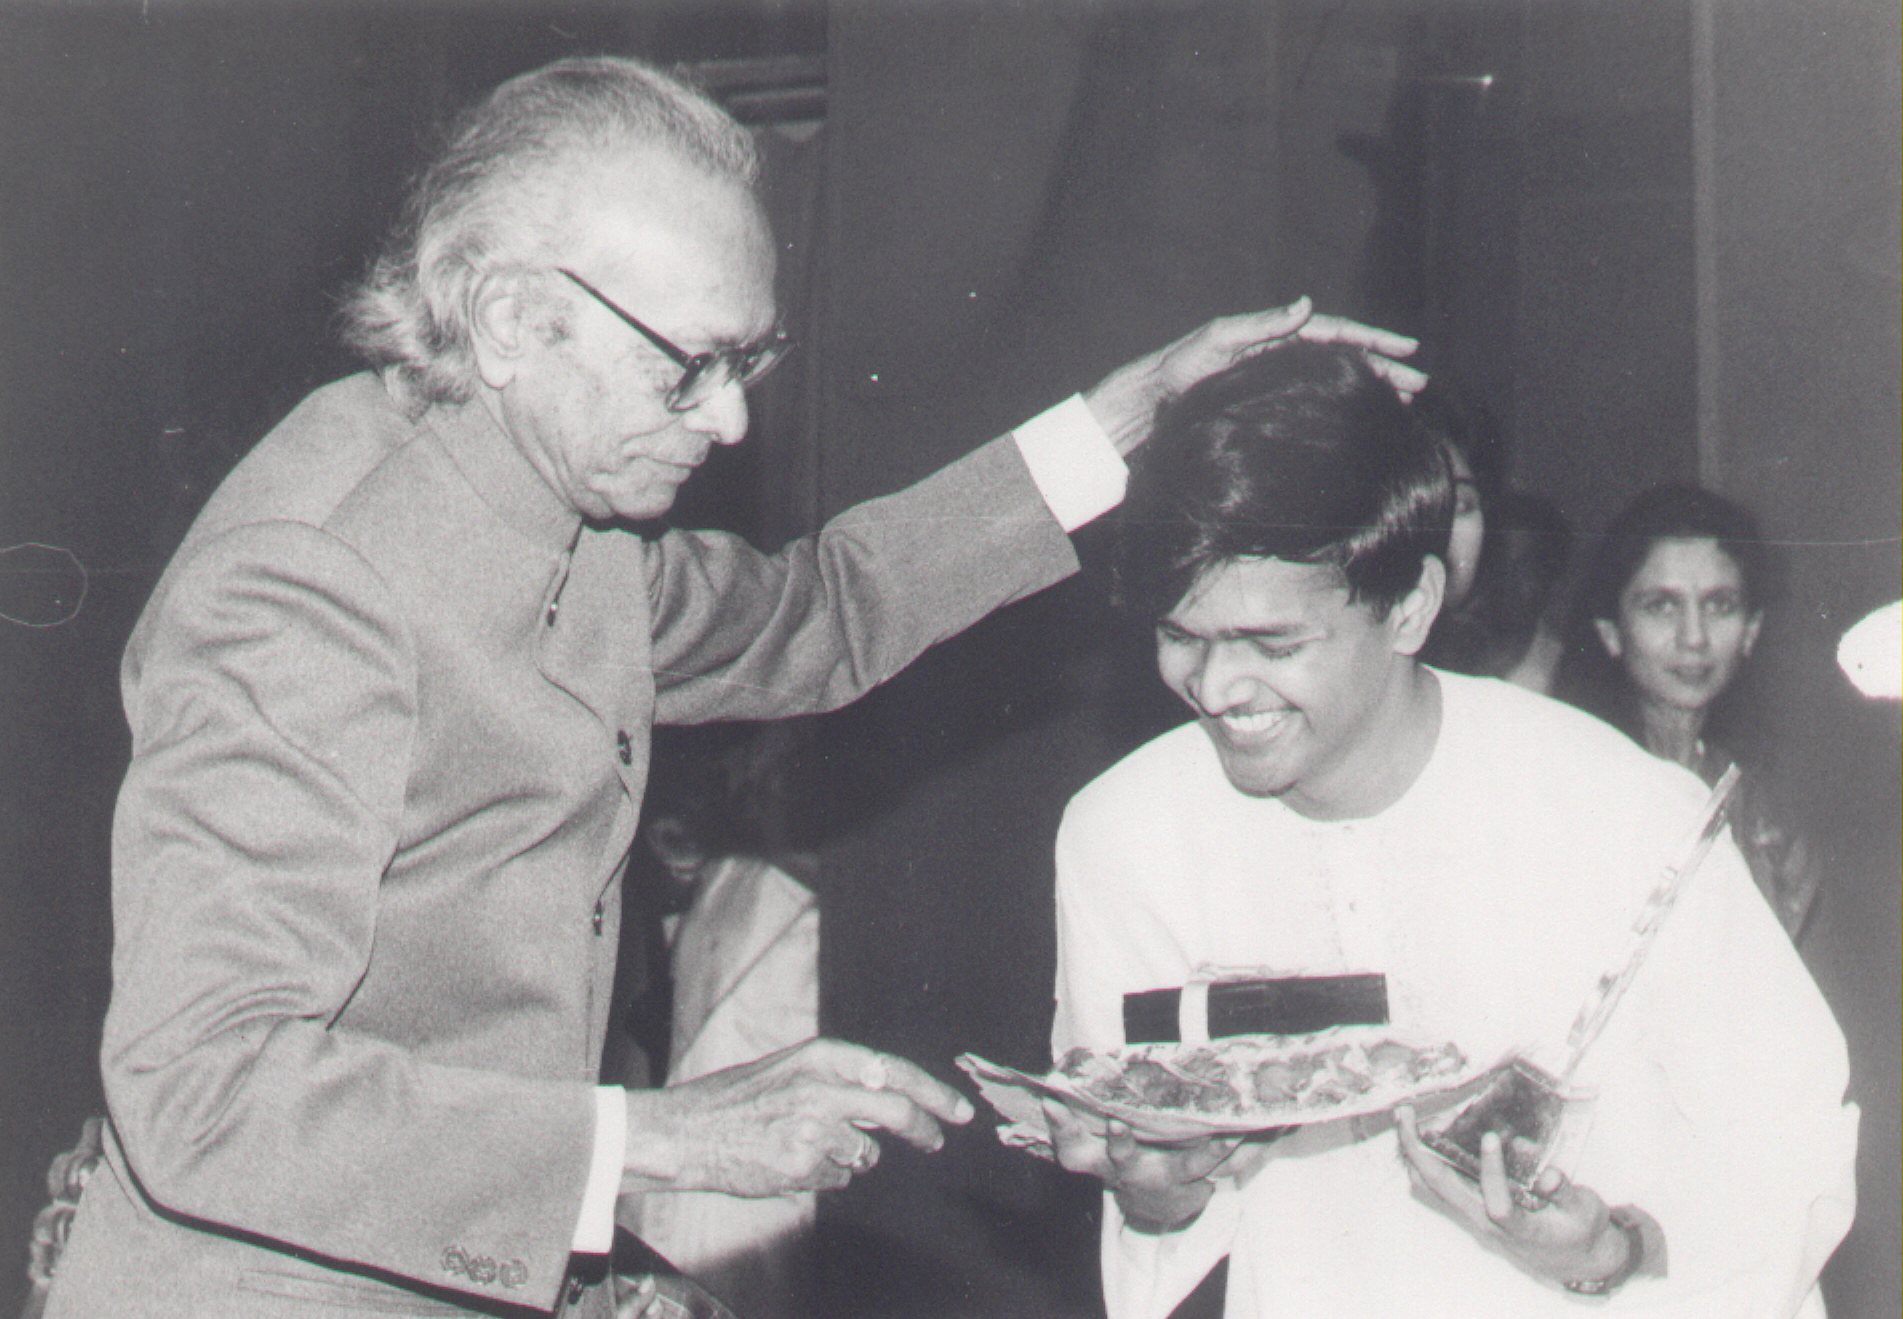 Receiving award from Naushad Ji